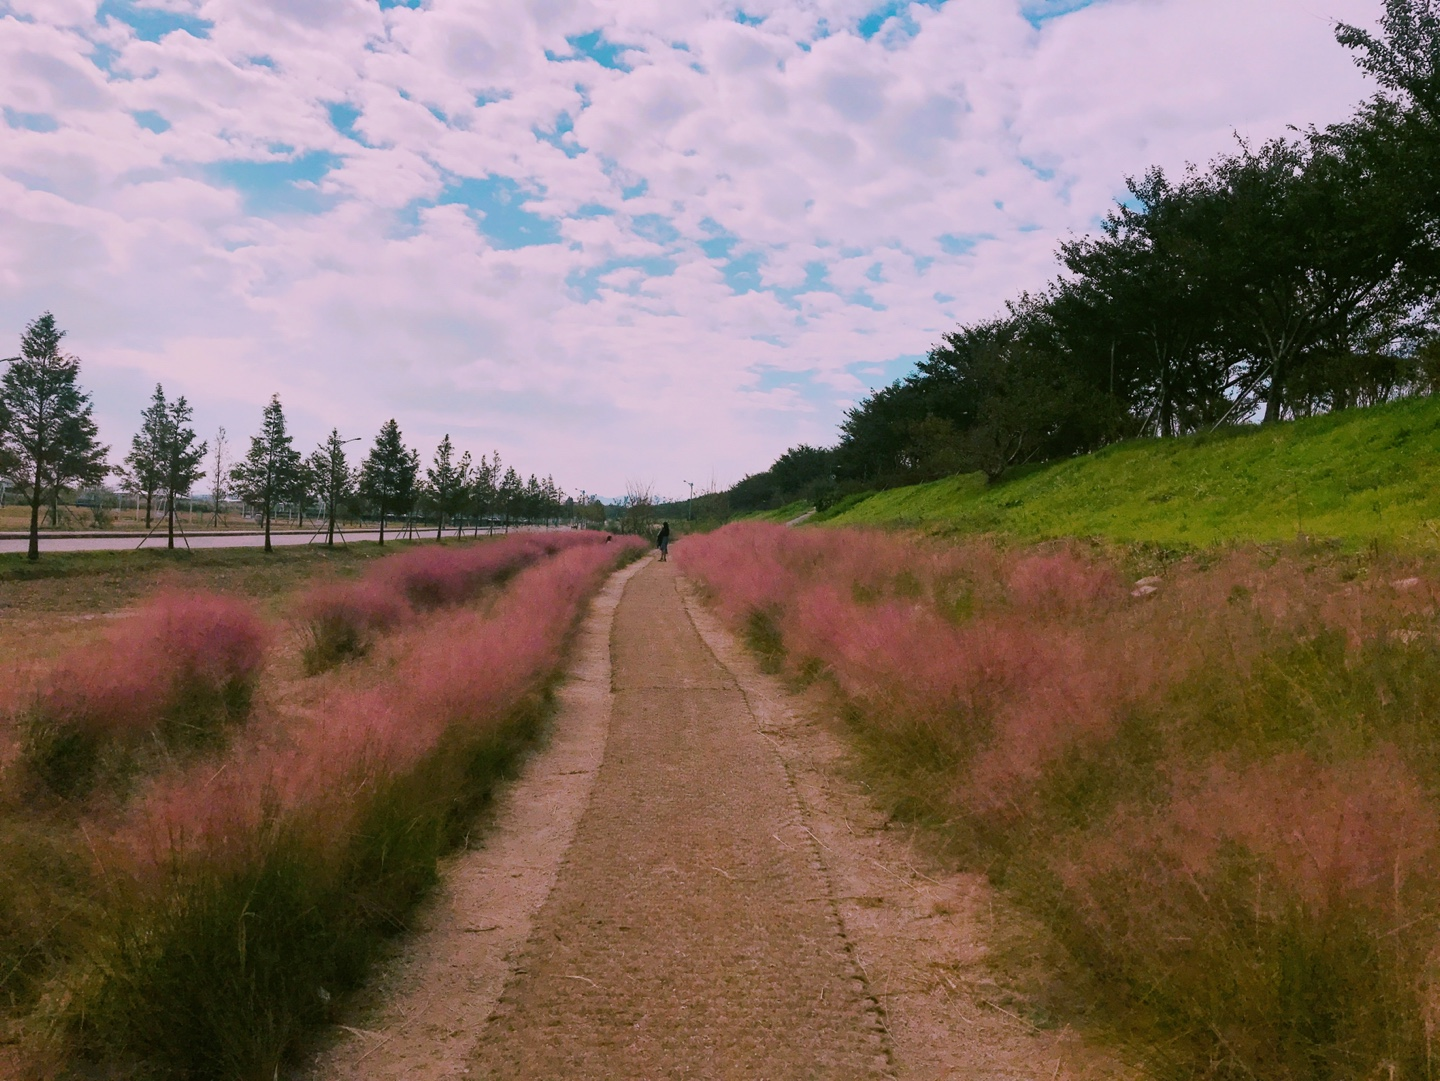 (Autumn) Gyeongju Pink Muhly One Day Tour